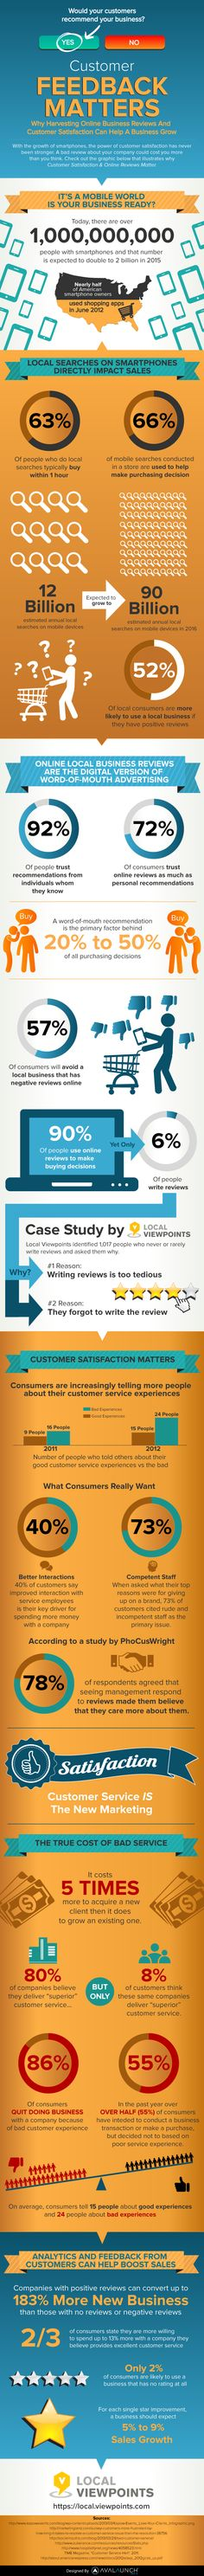 [Infographic] In a Mobile World Customer Reviews Matter More Than Ever Before